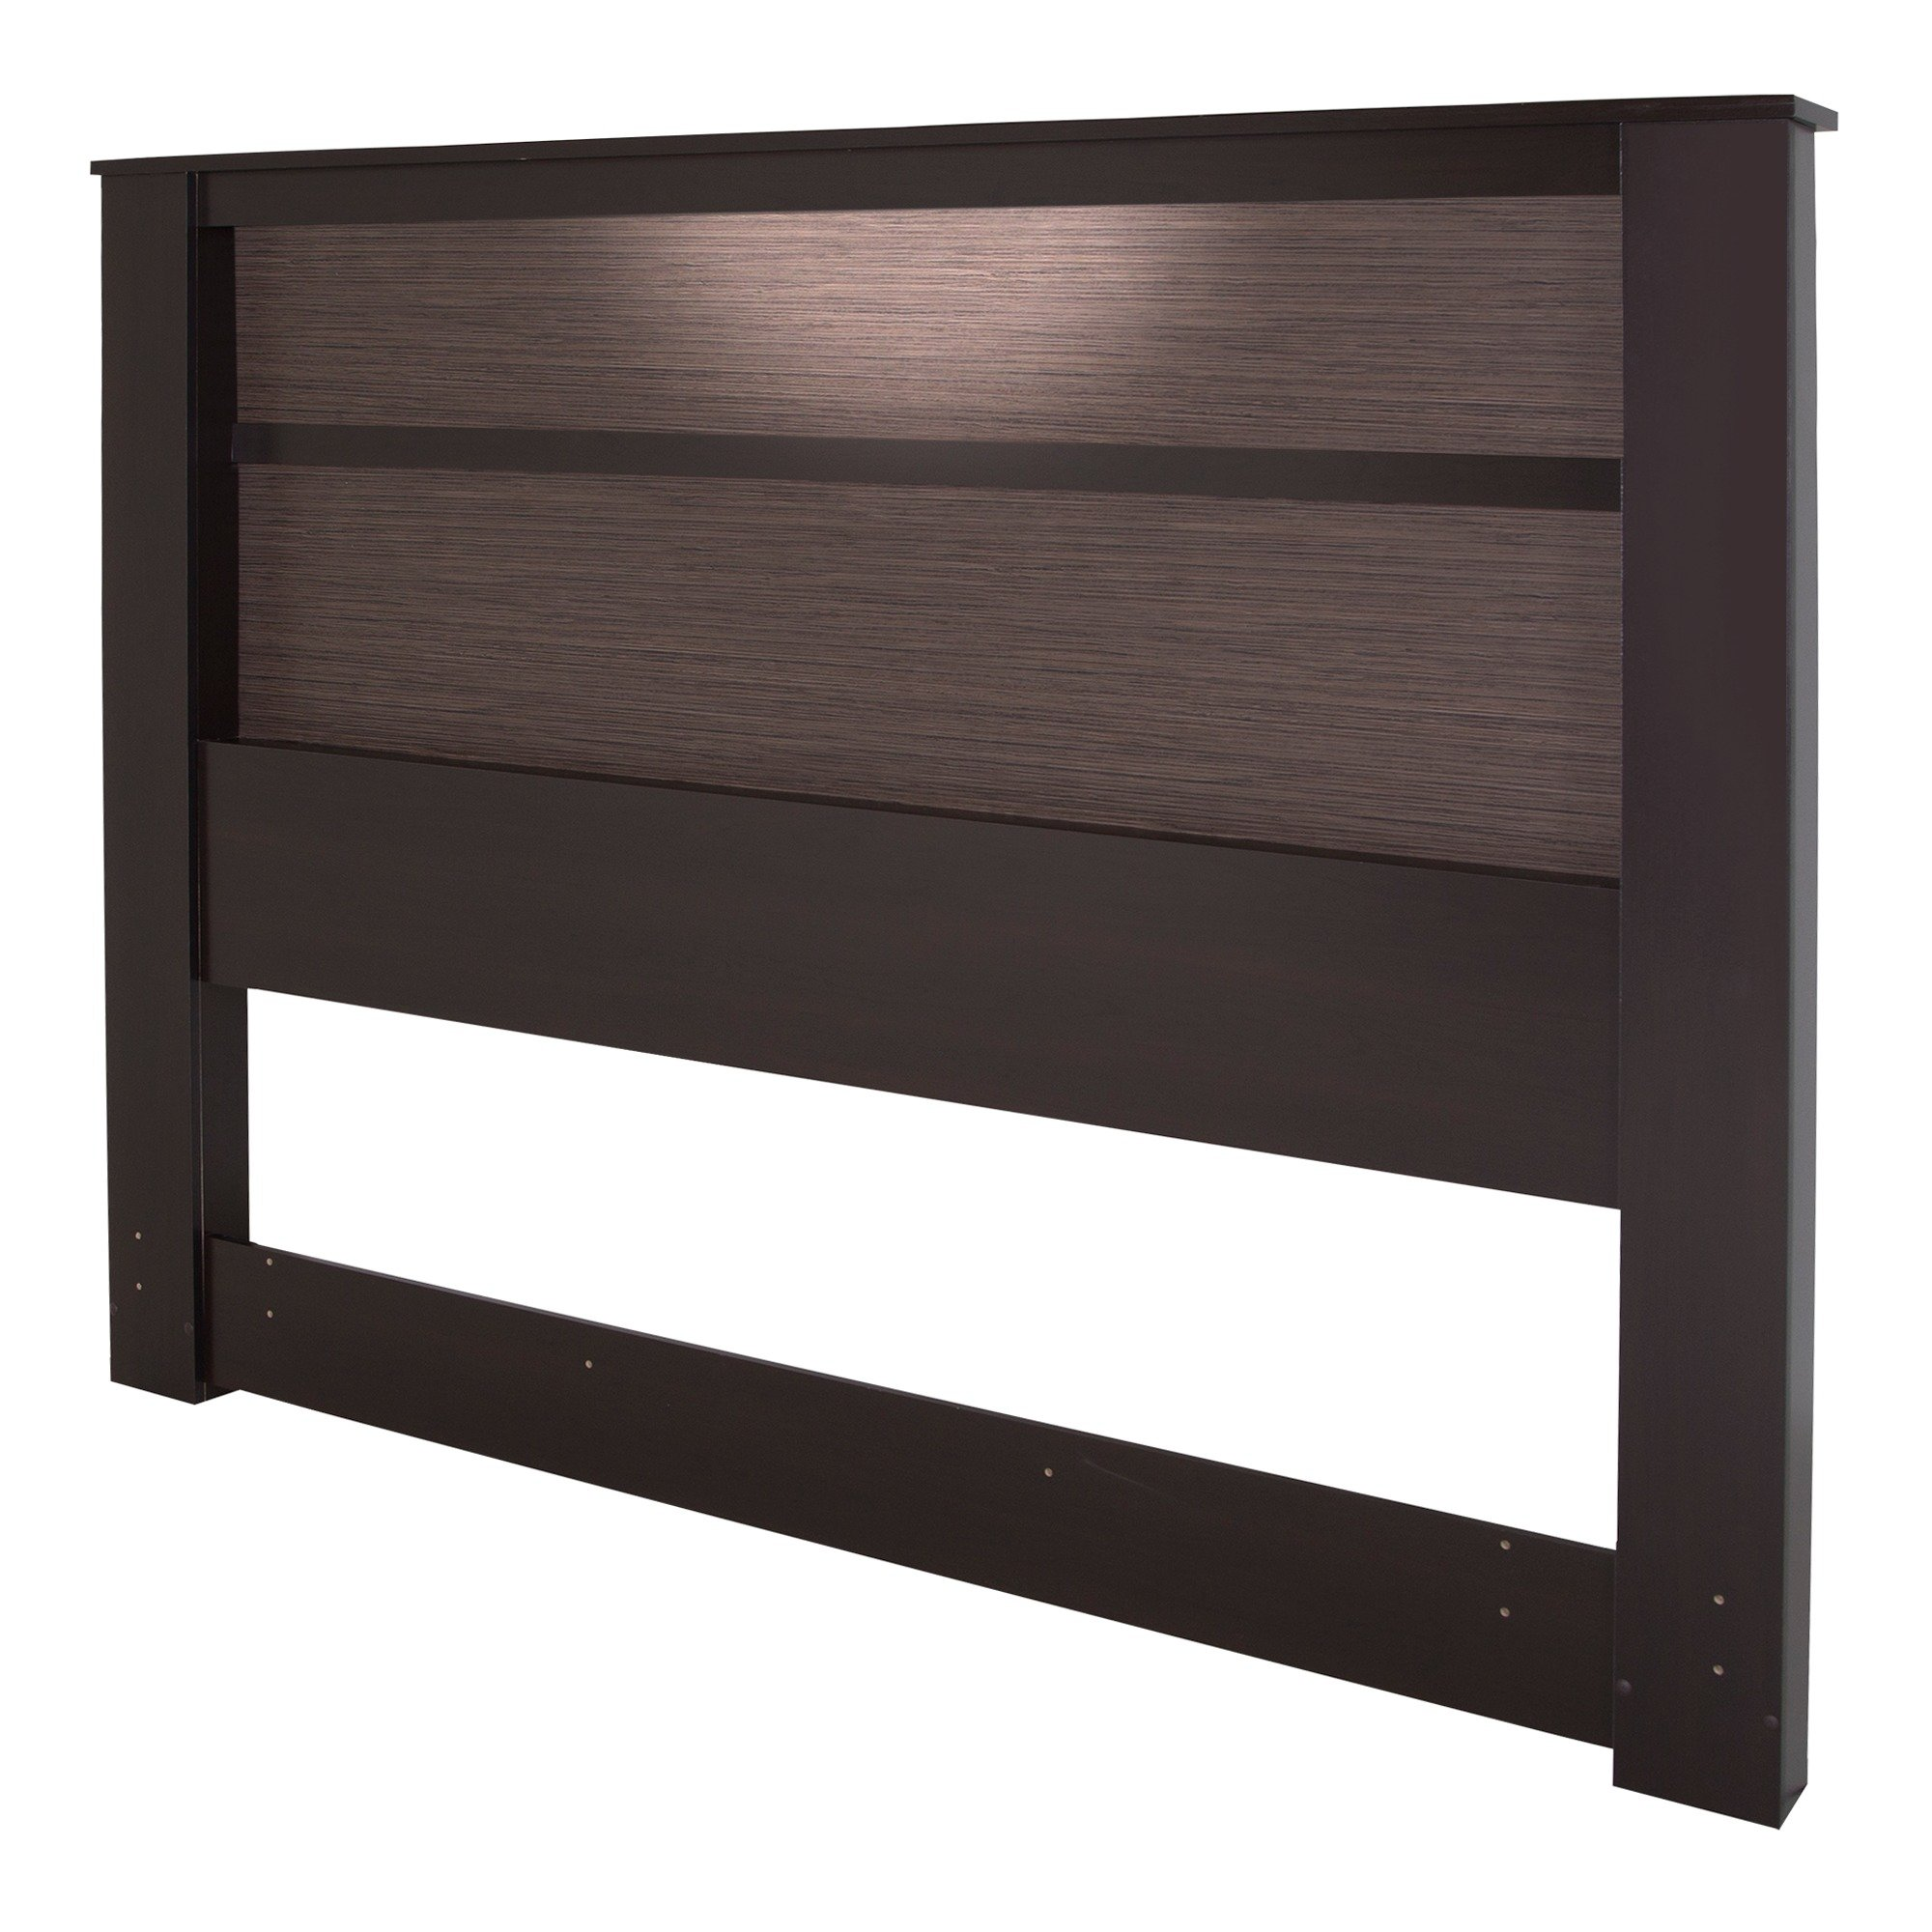 South Shore Gloria Headboard with Lights, King 78-Inch, Chocolate Brown & Zebrano